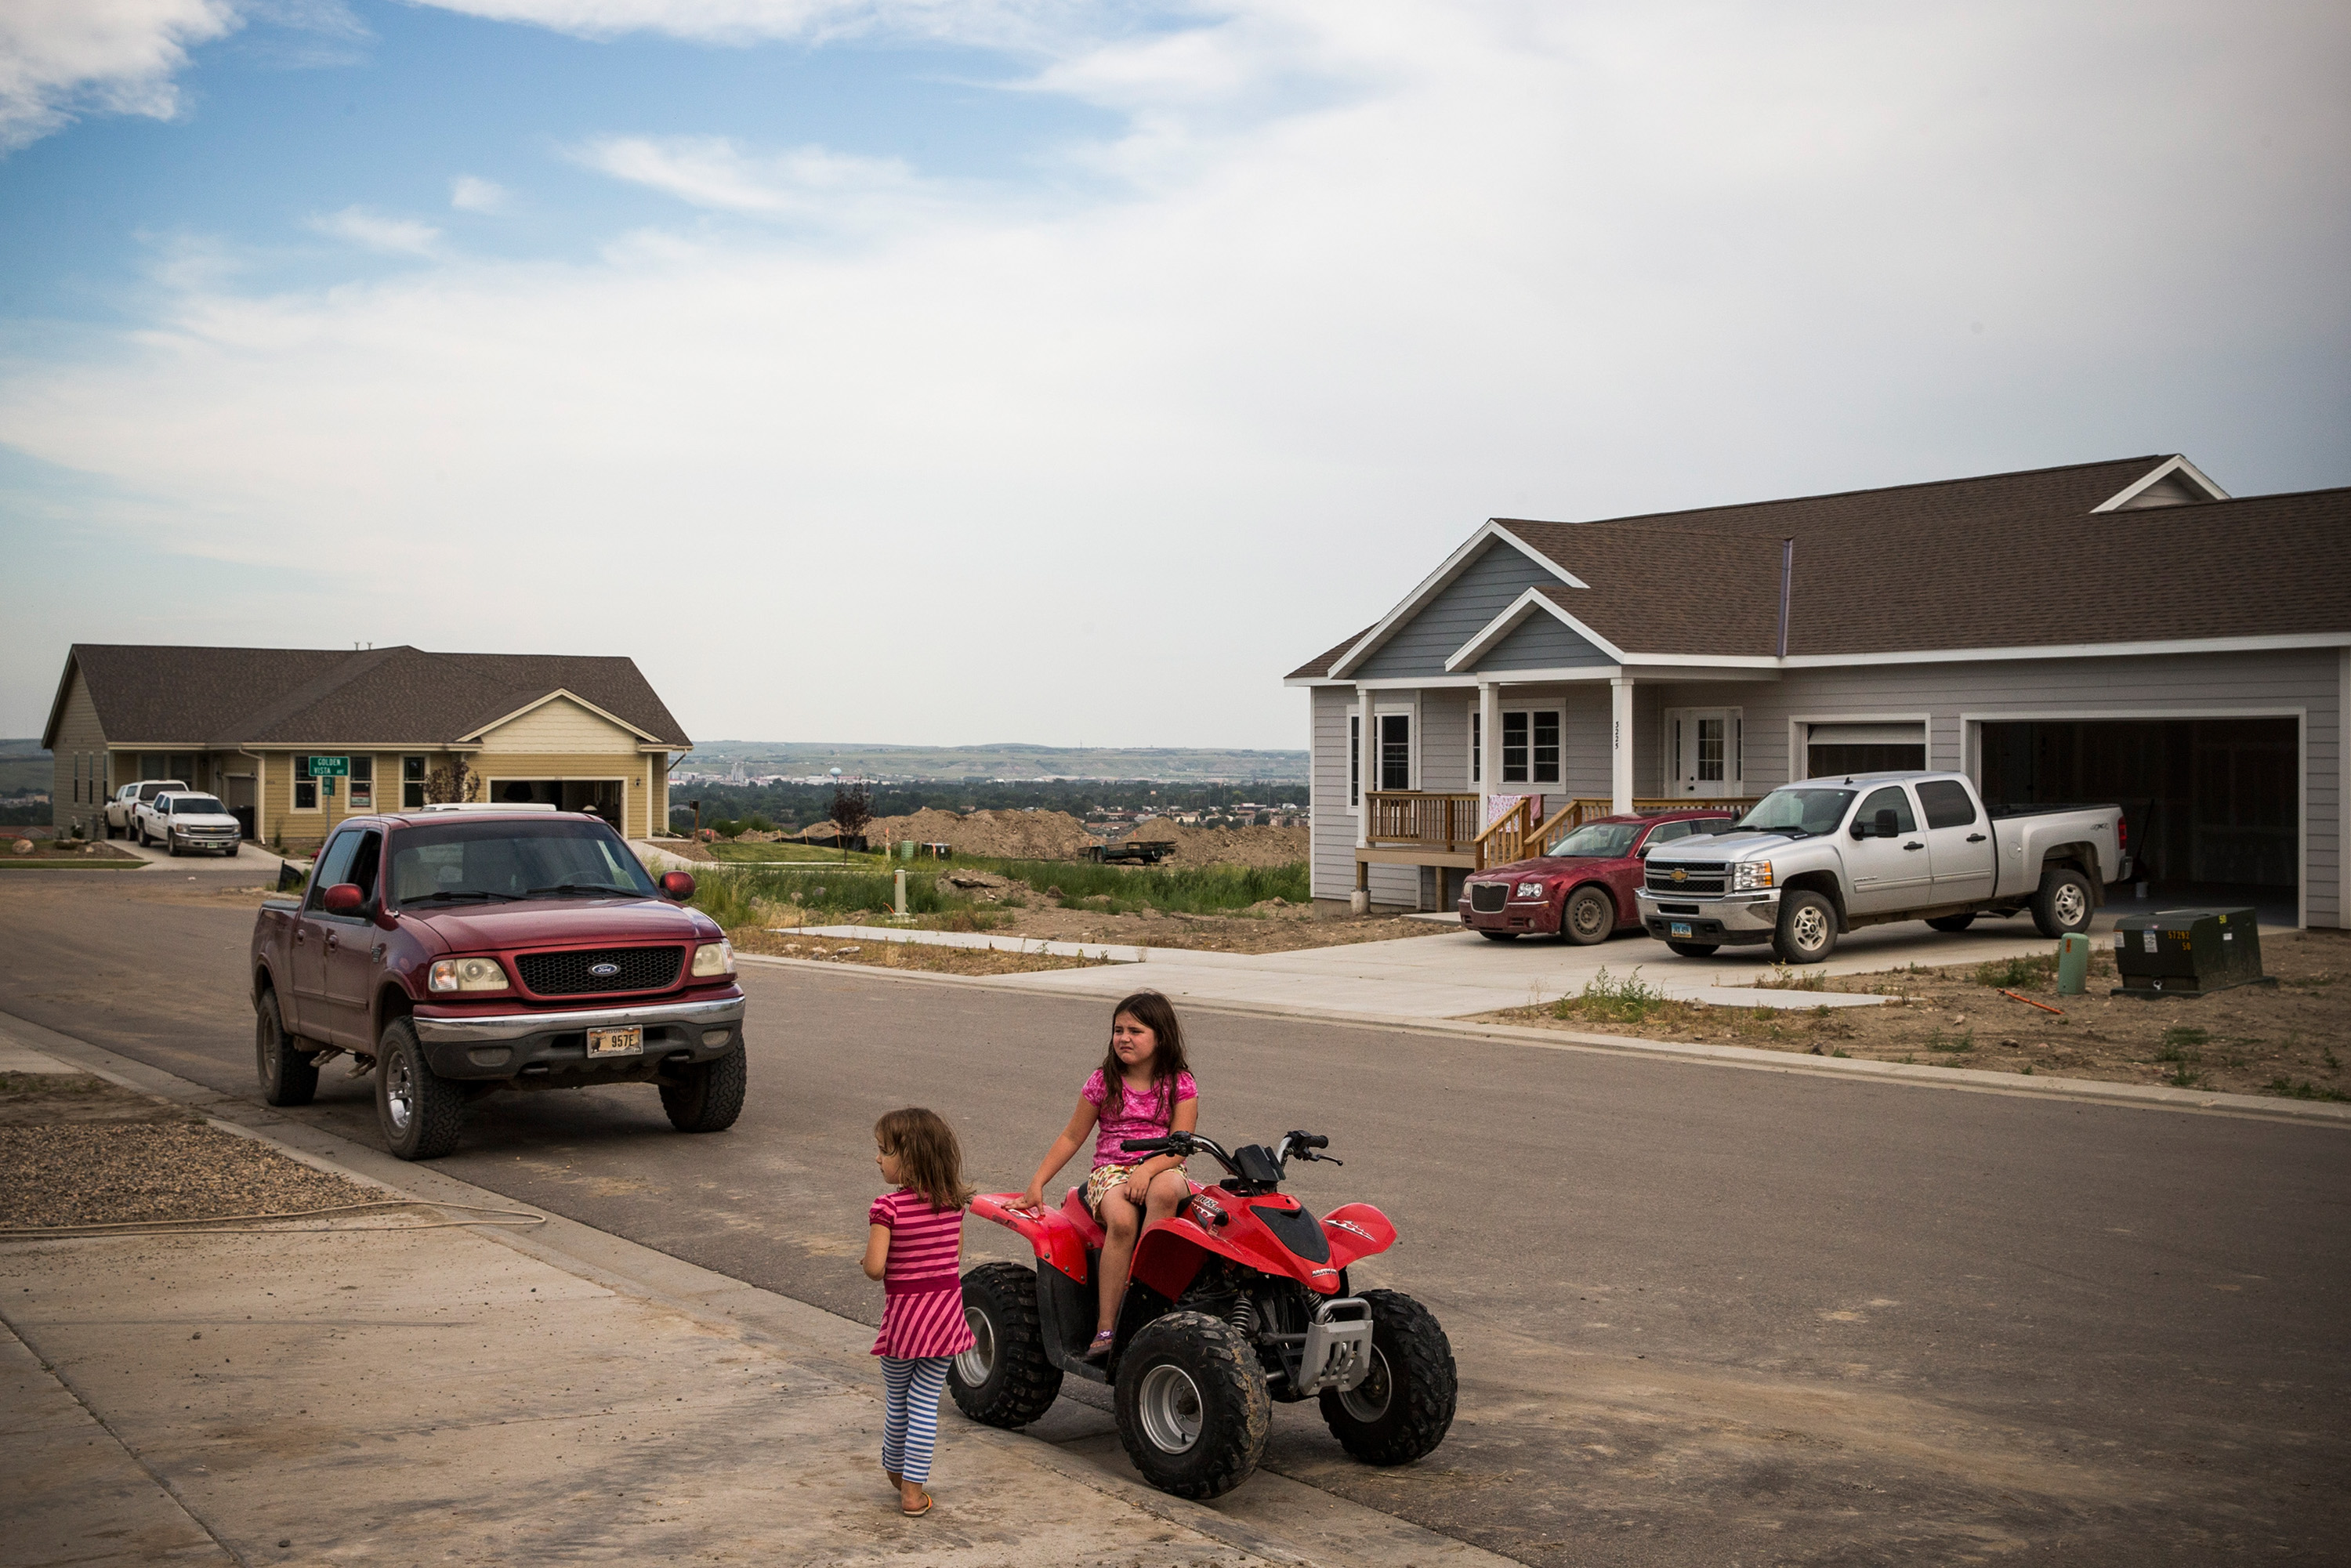 Two girls play on a four-wheeler in a new subdivision on July 24, 2013 in Williston.